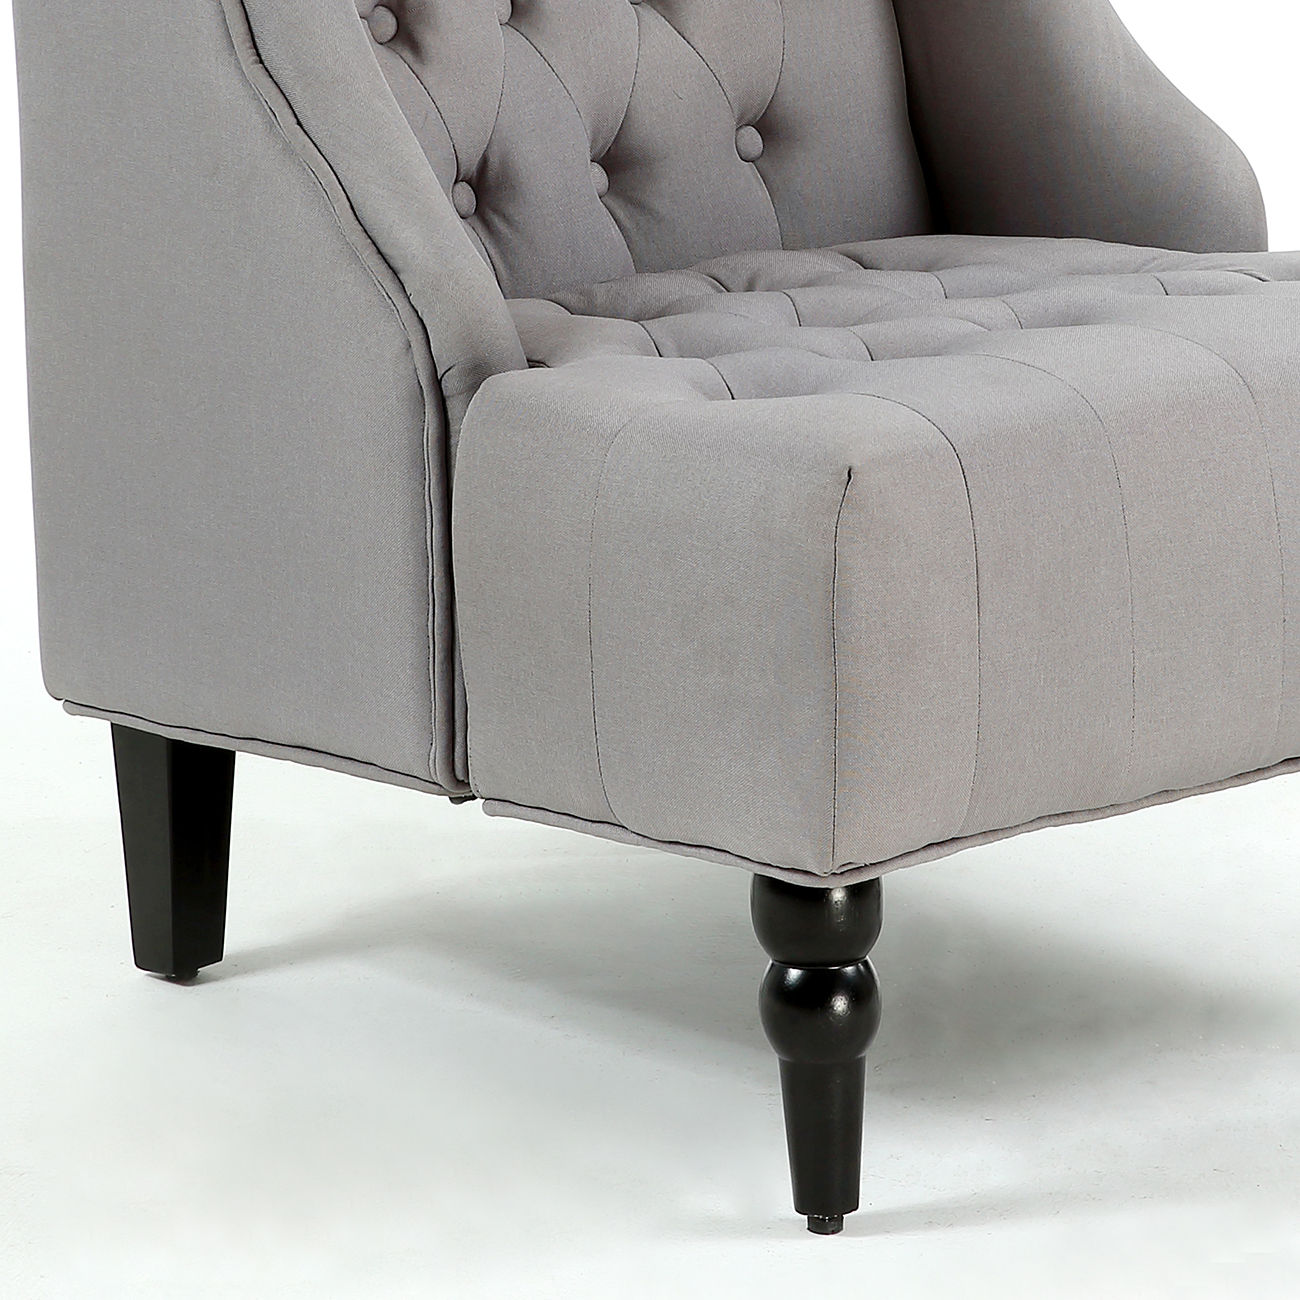 Wingback Accent Chair Tall High back Living Room Tufted